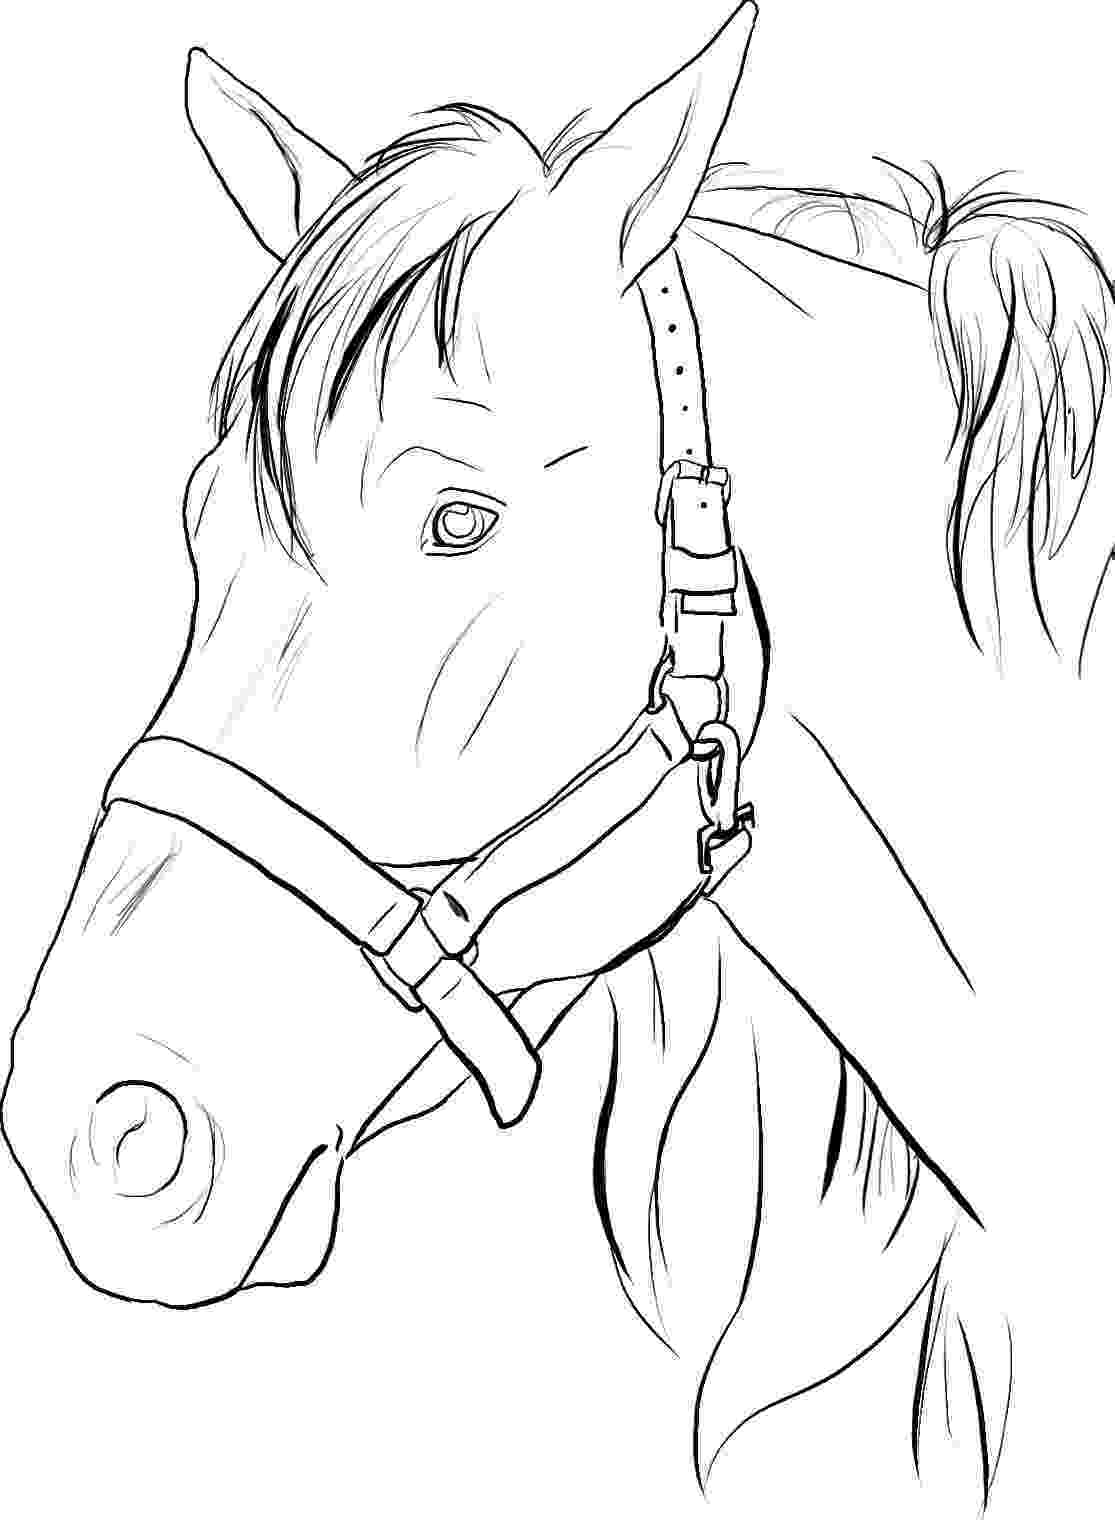 coloring pages of horse horse coloring pages 09 horse coloring pages cute horse of pages coloring